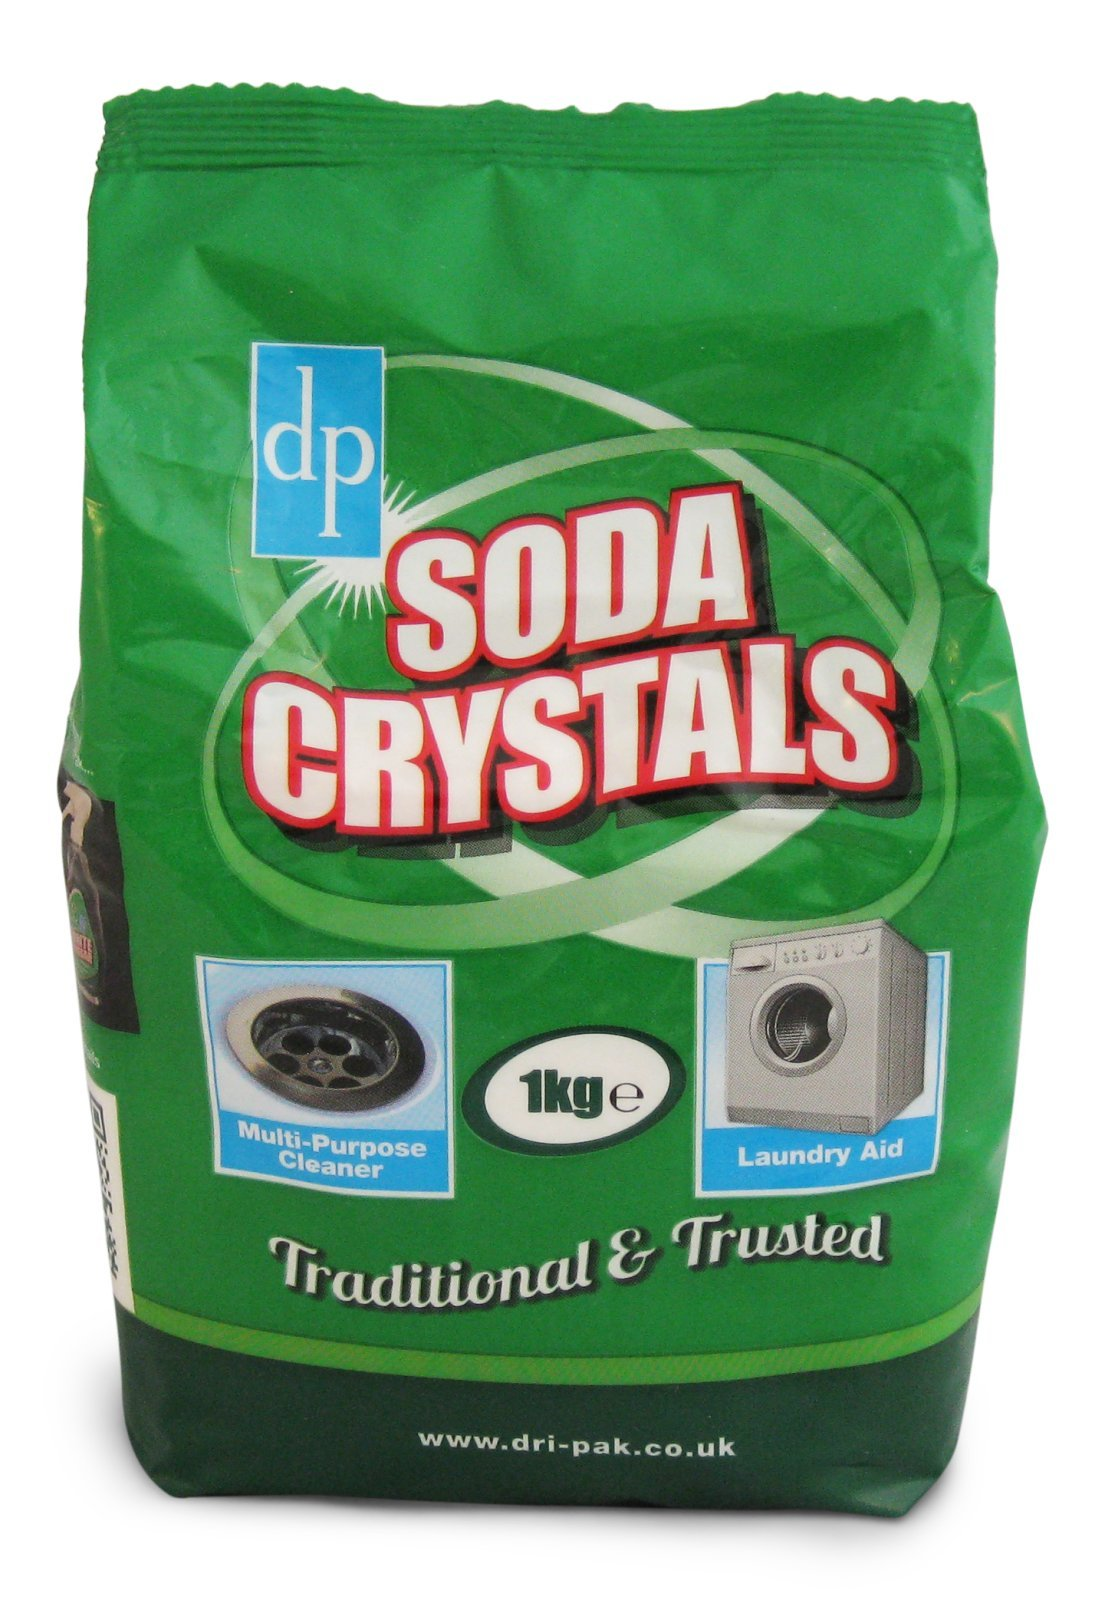 Picture of Dri-Pak Soda Crystals 1kg / 2.2 lb. bag